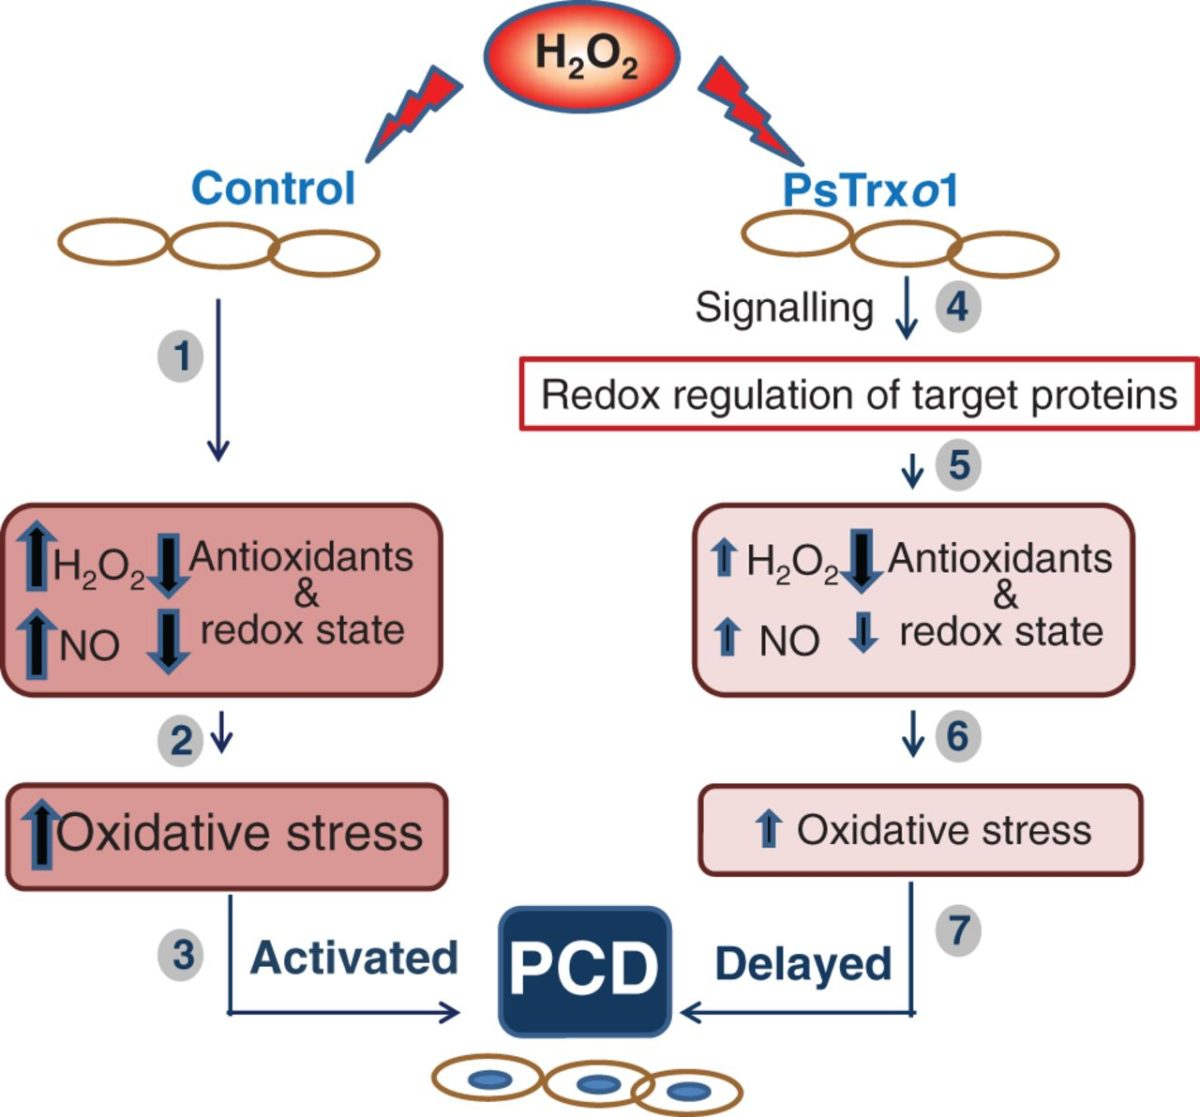 Over-expression of Trxo1 and cell viability under H2O2 stress